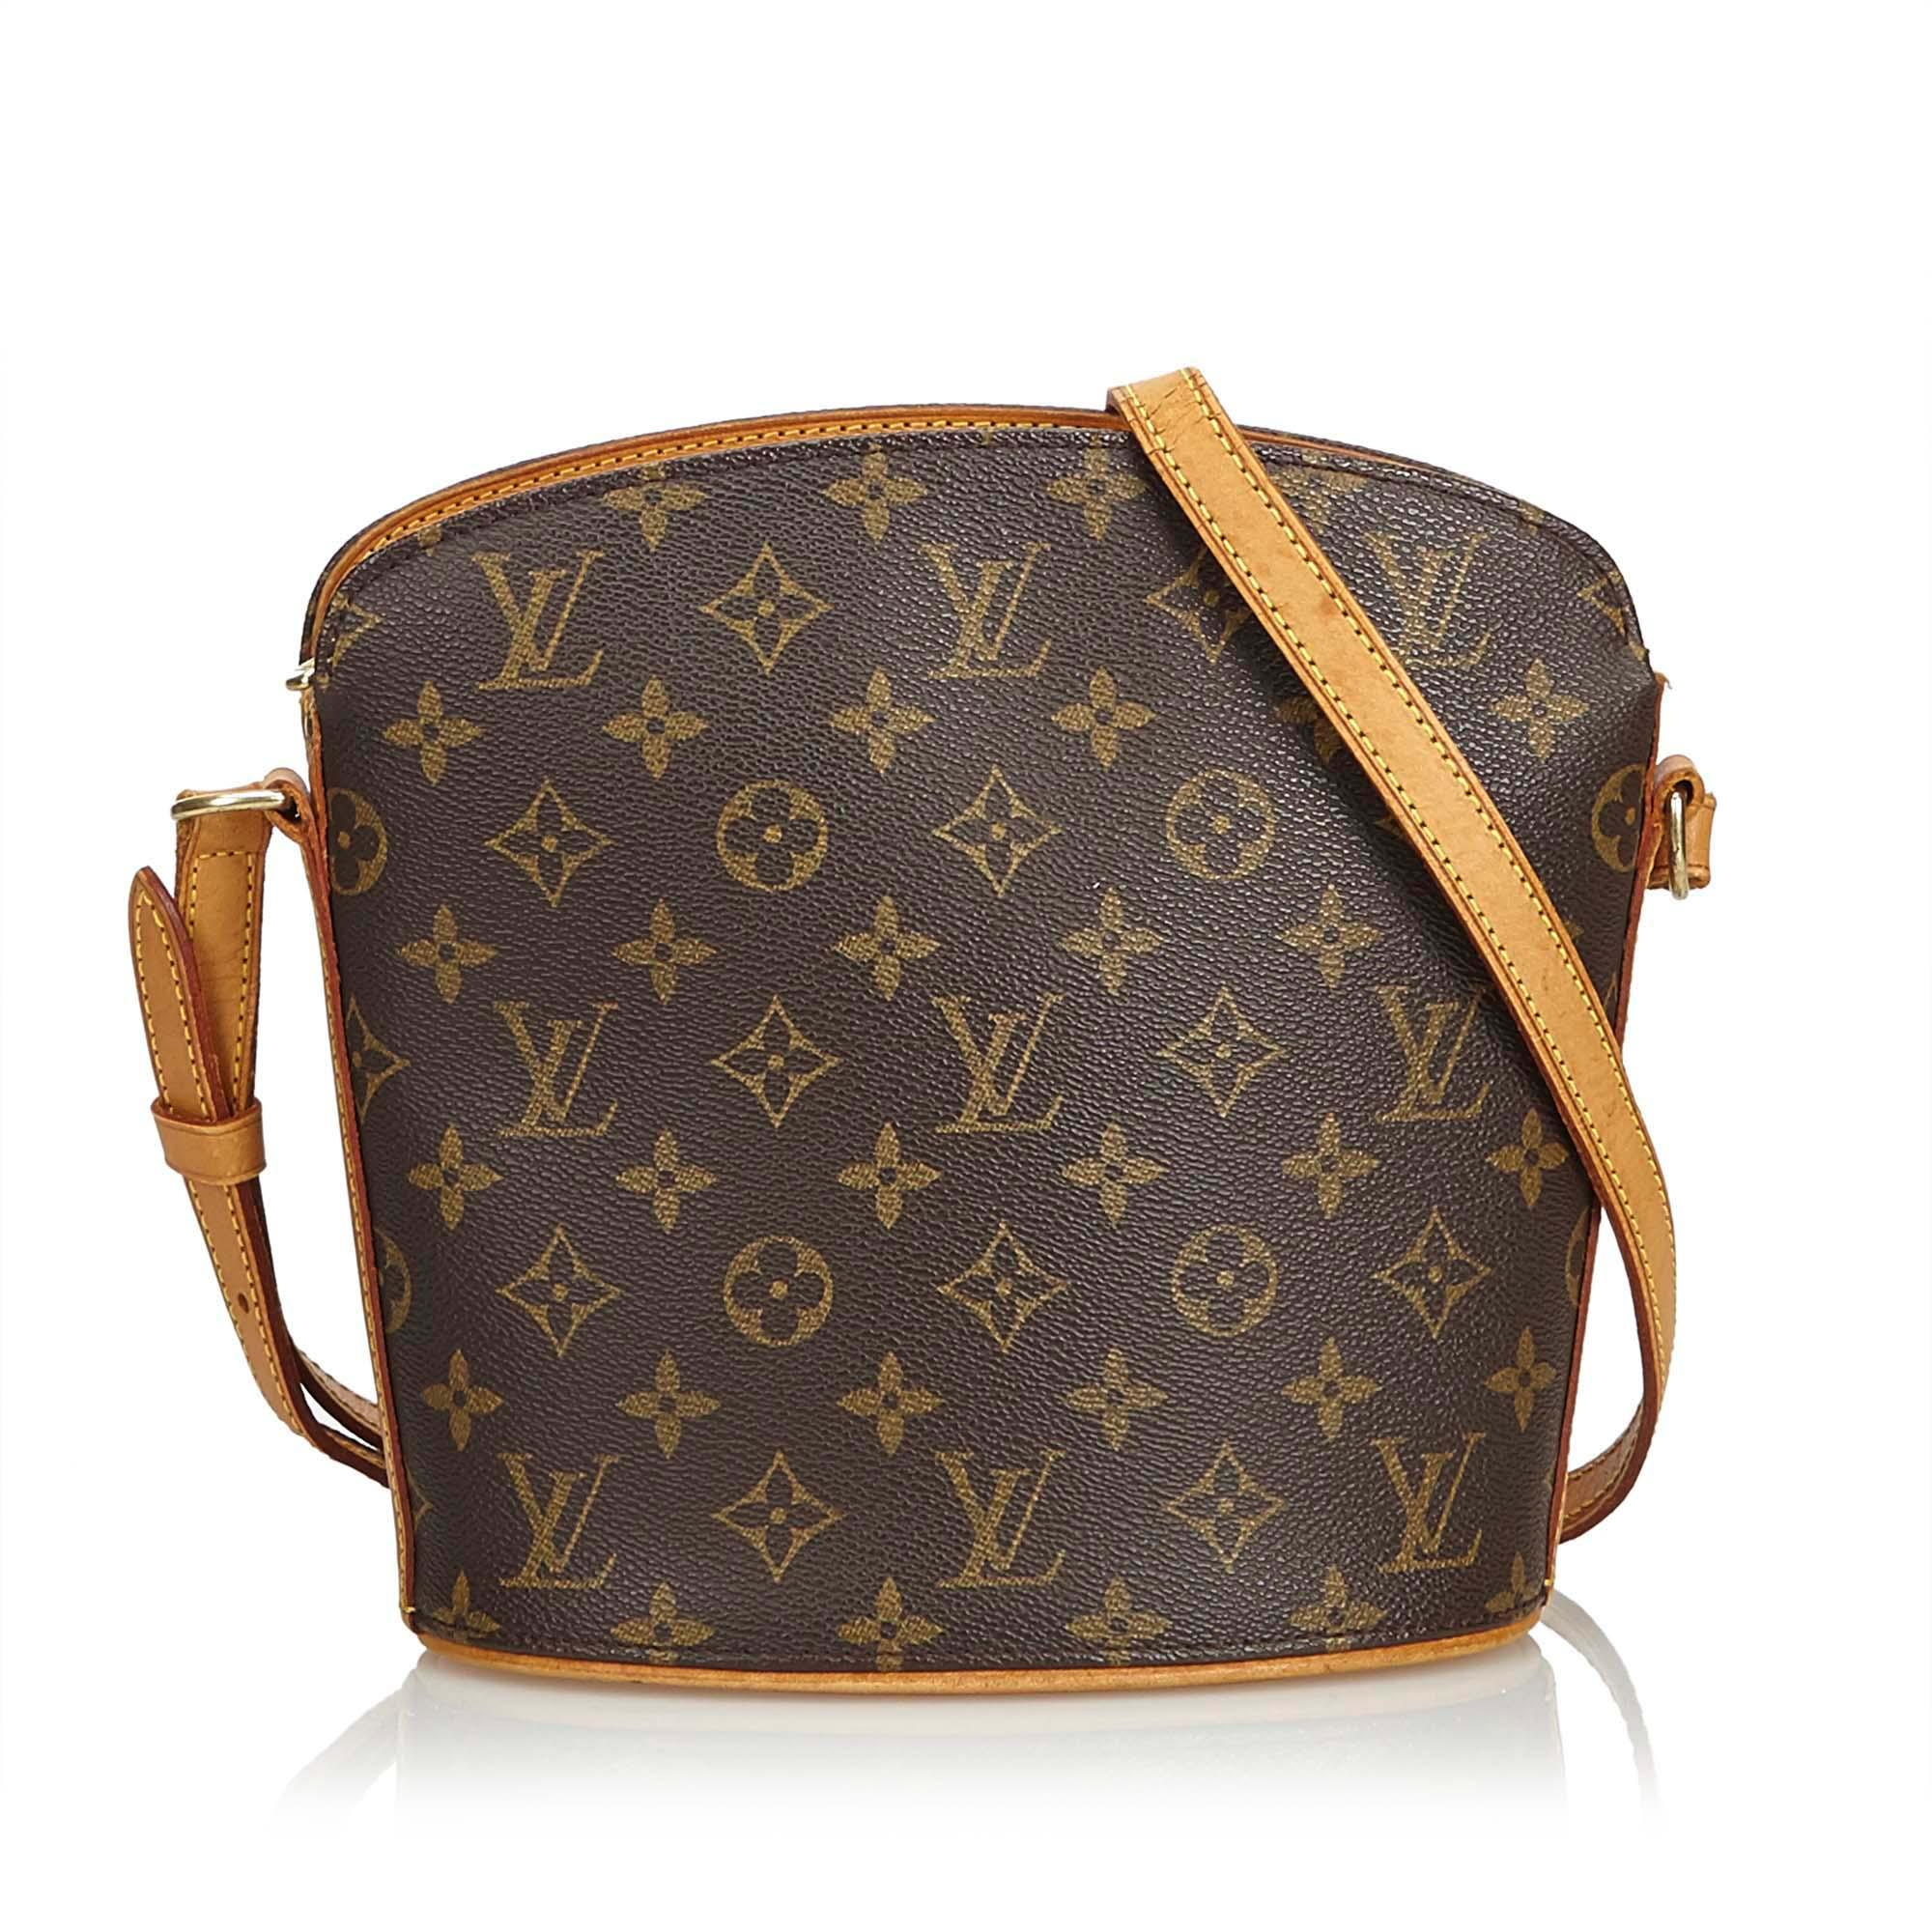 9c0aa2d3ce96 Lyst - Louis Vuitton Monogram Drouot in Brown